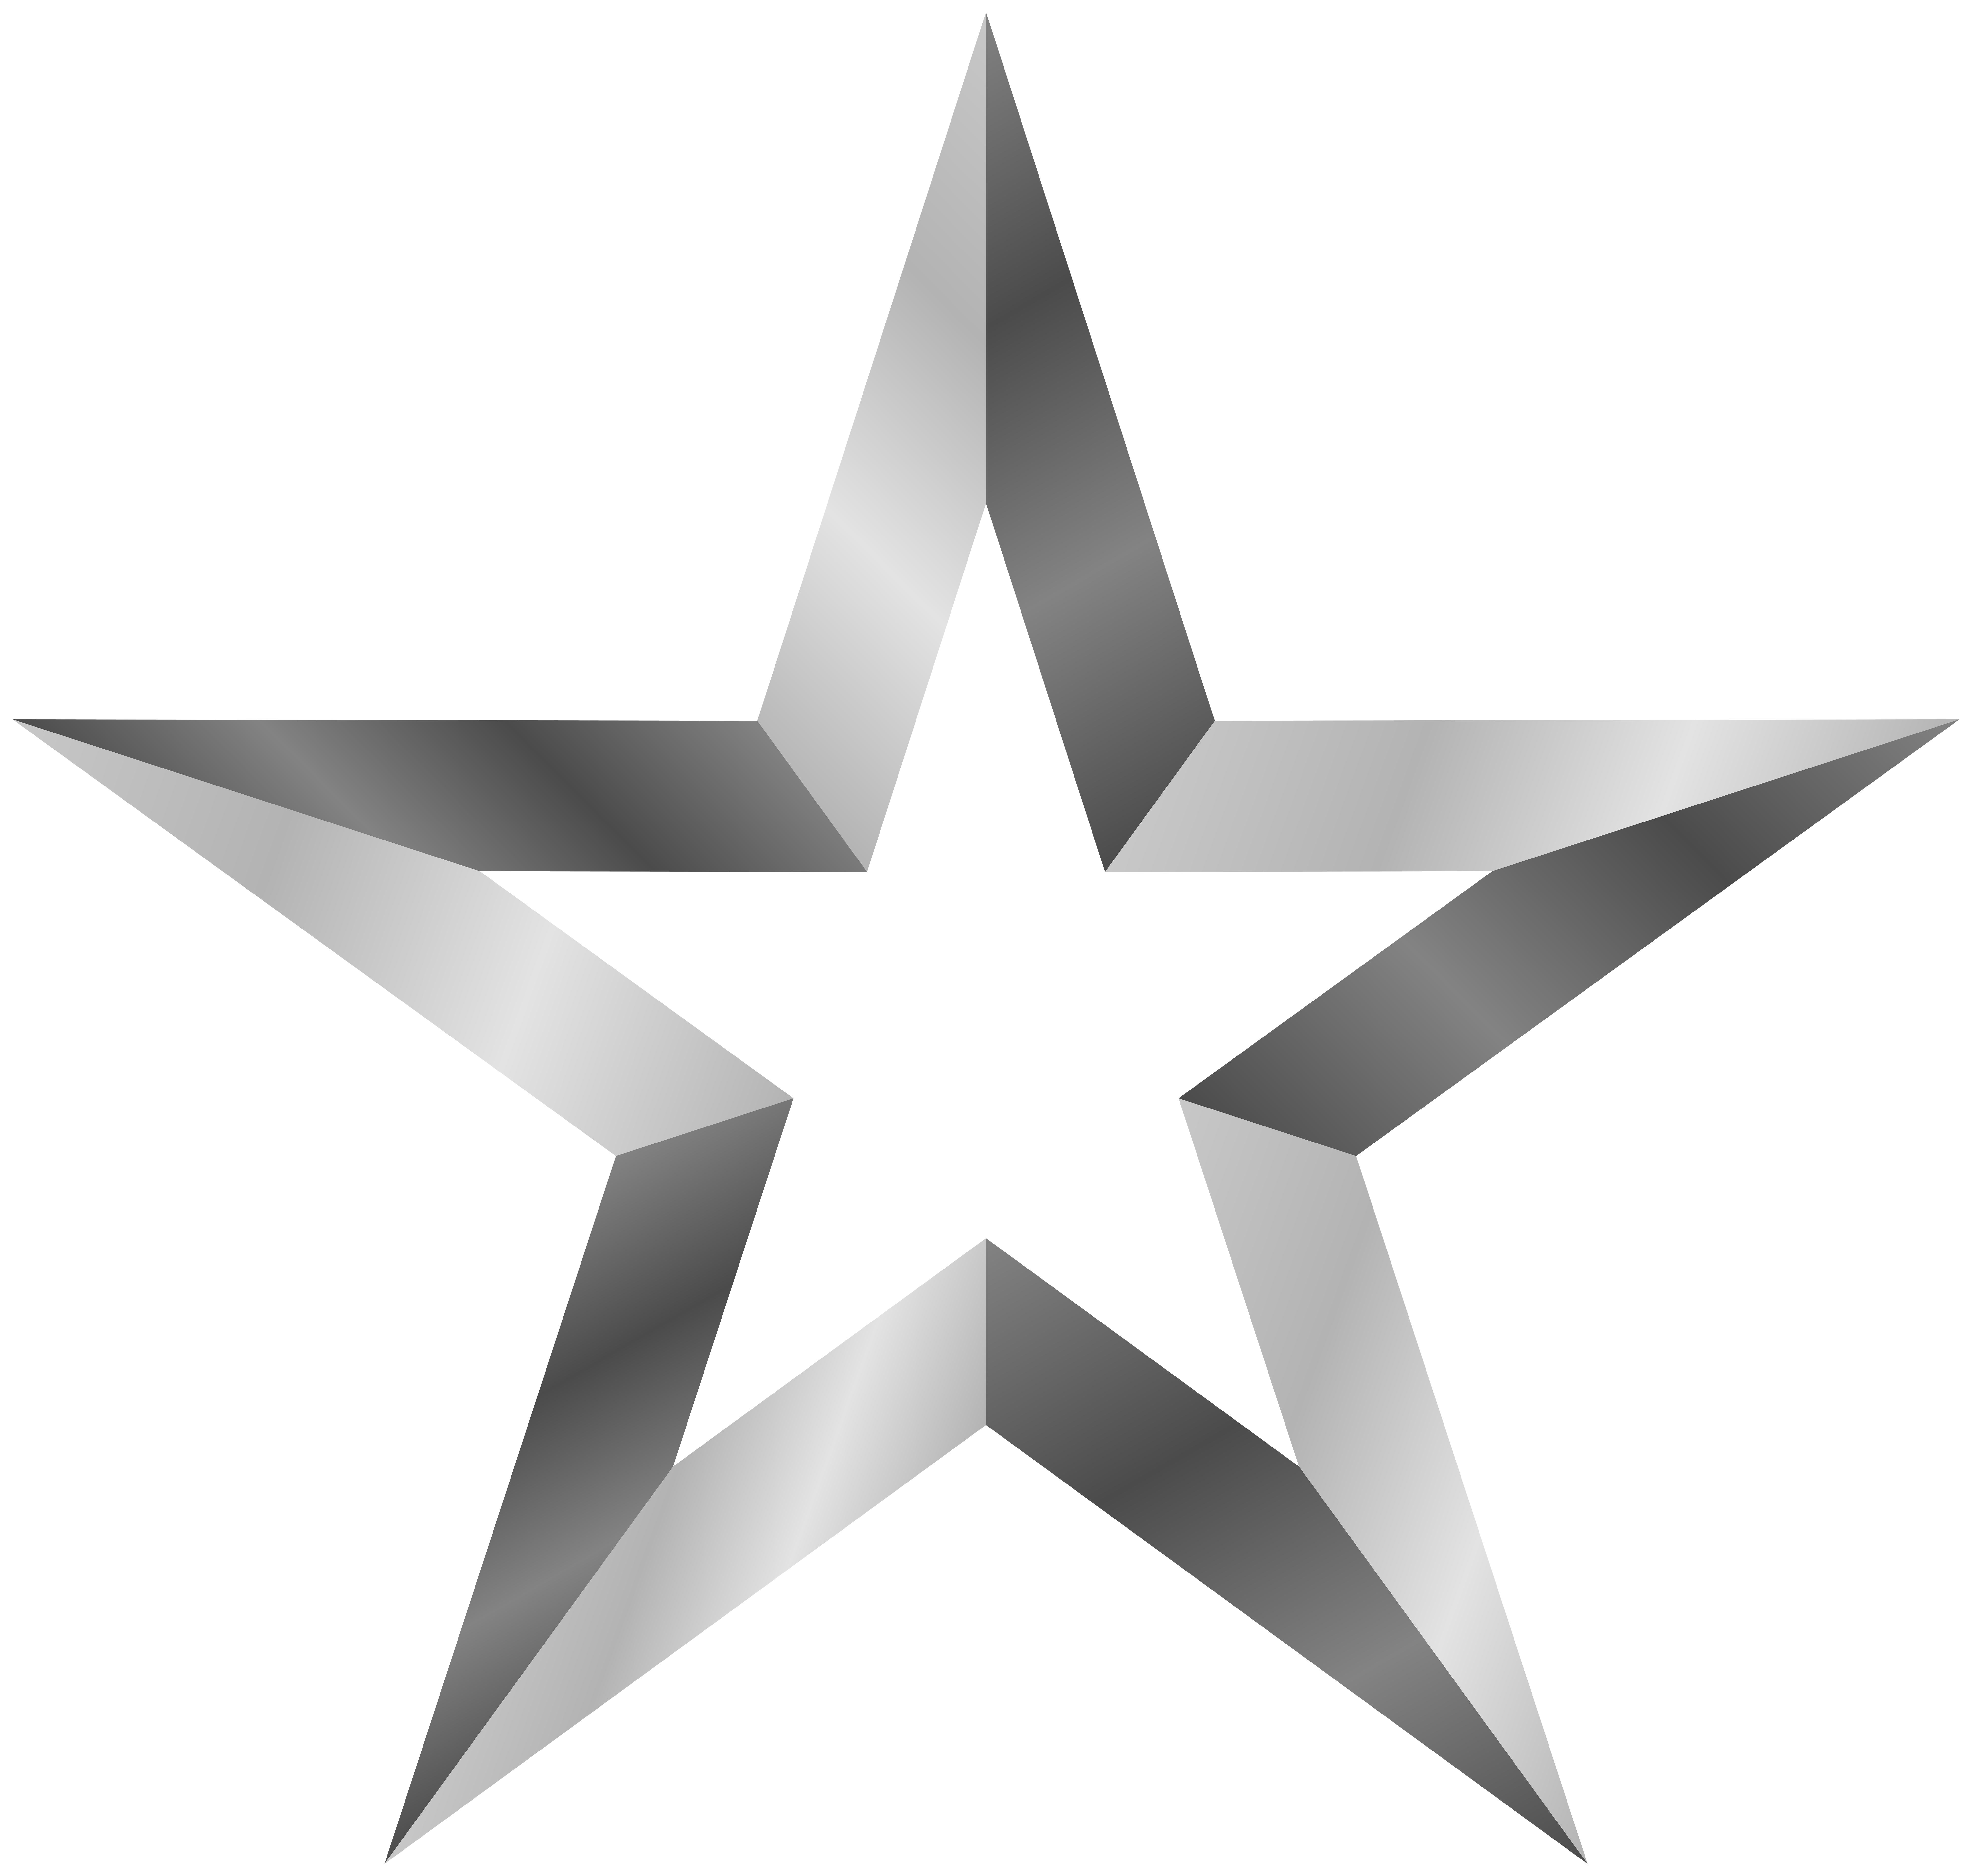 Silver star transparent png. Galaxy clipart starry sky